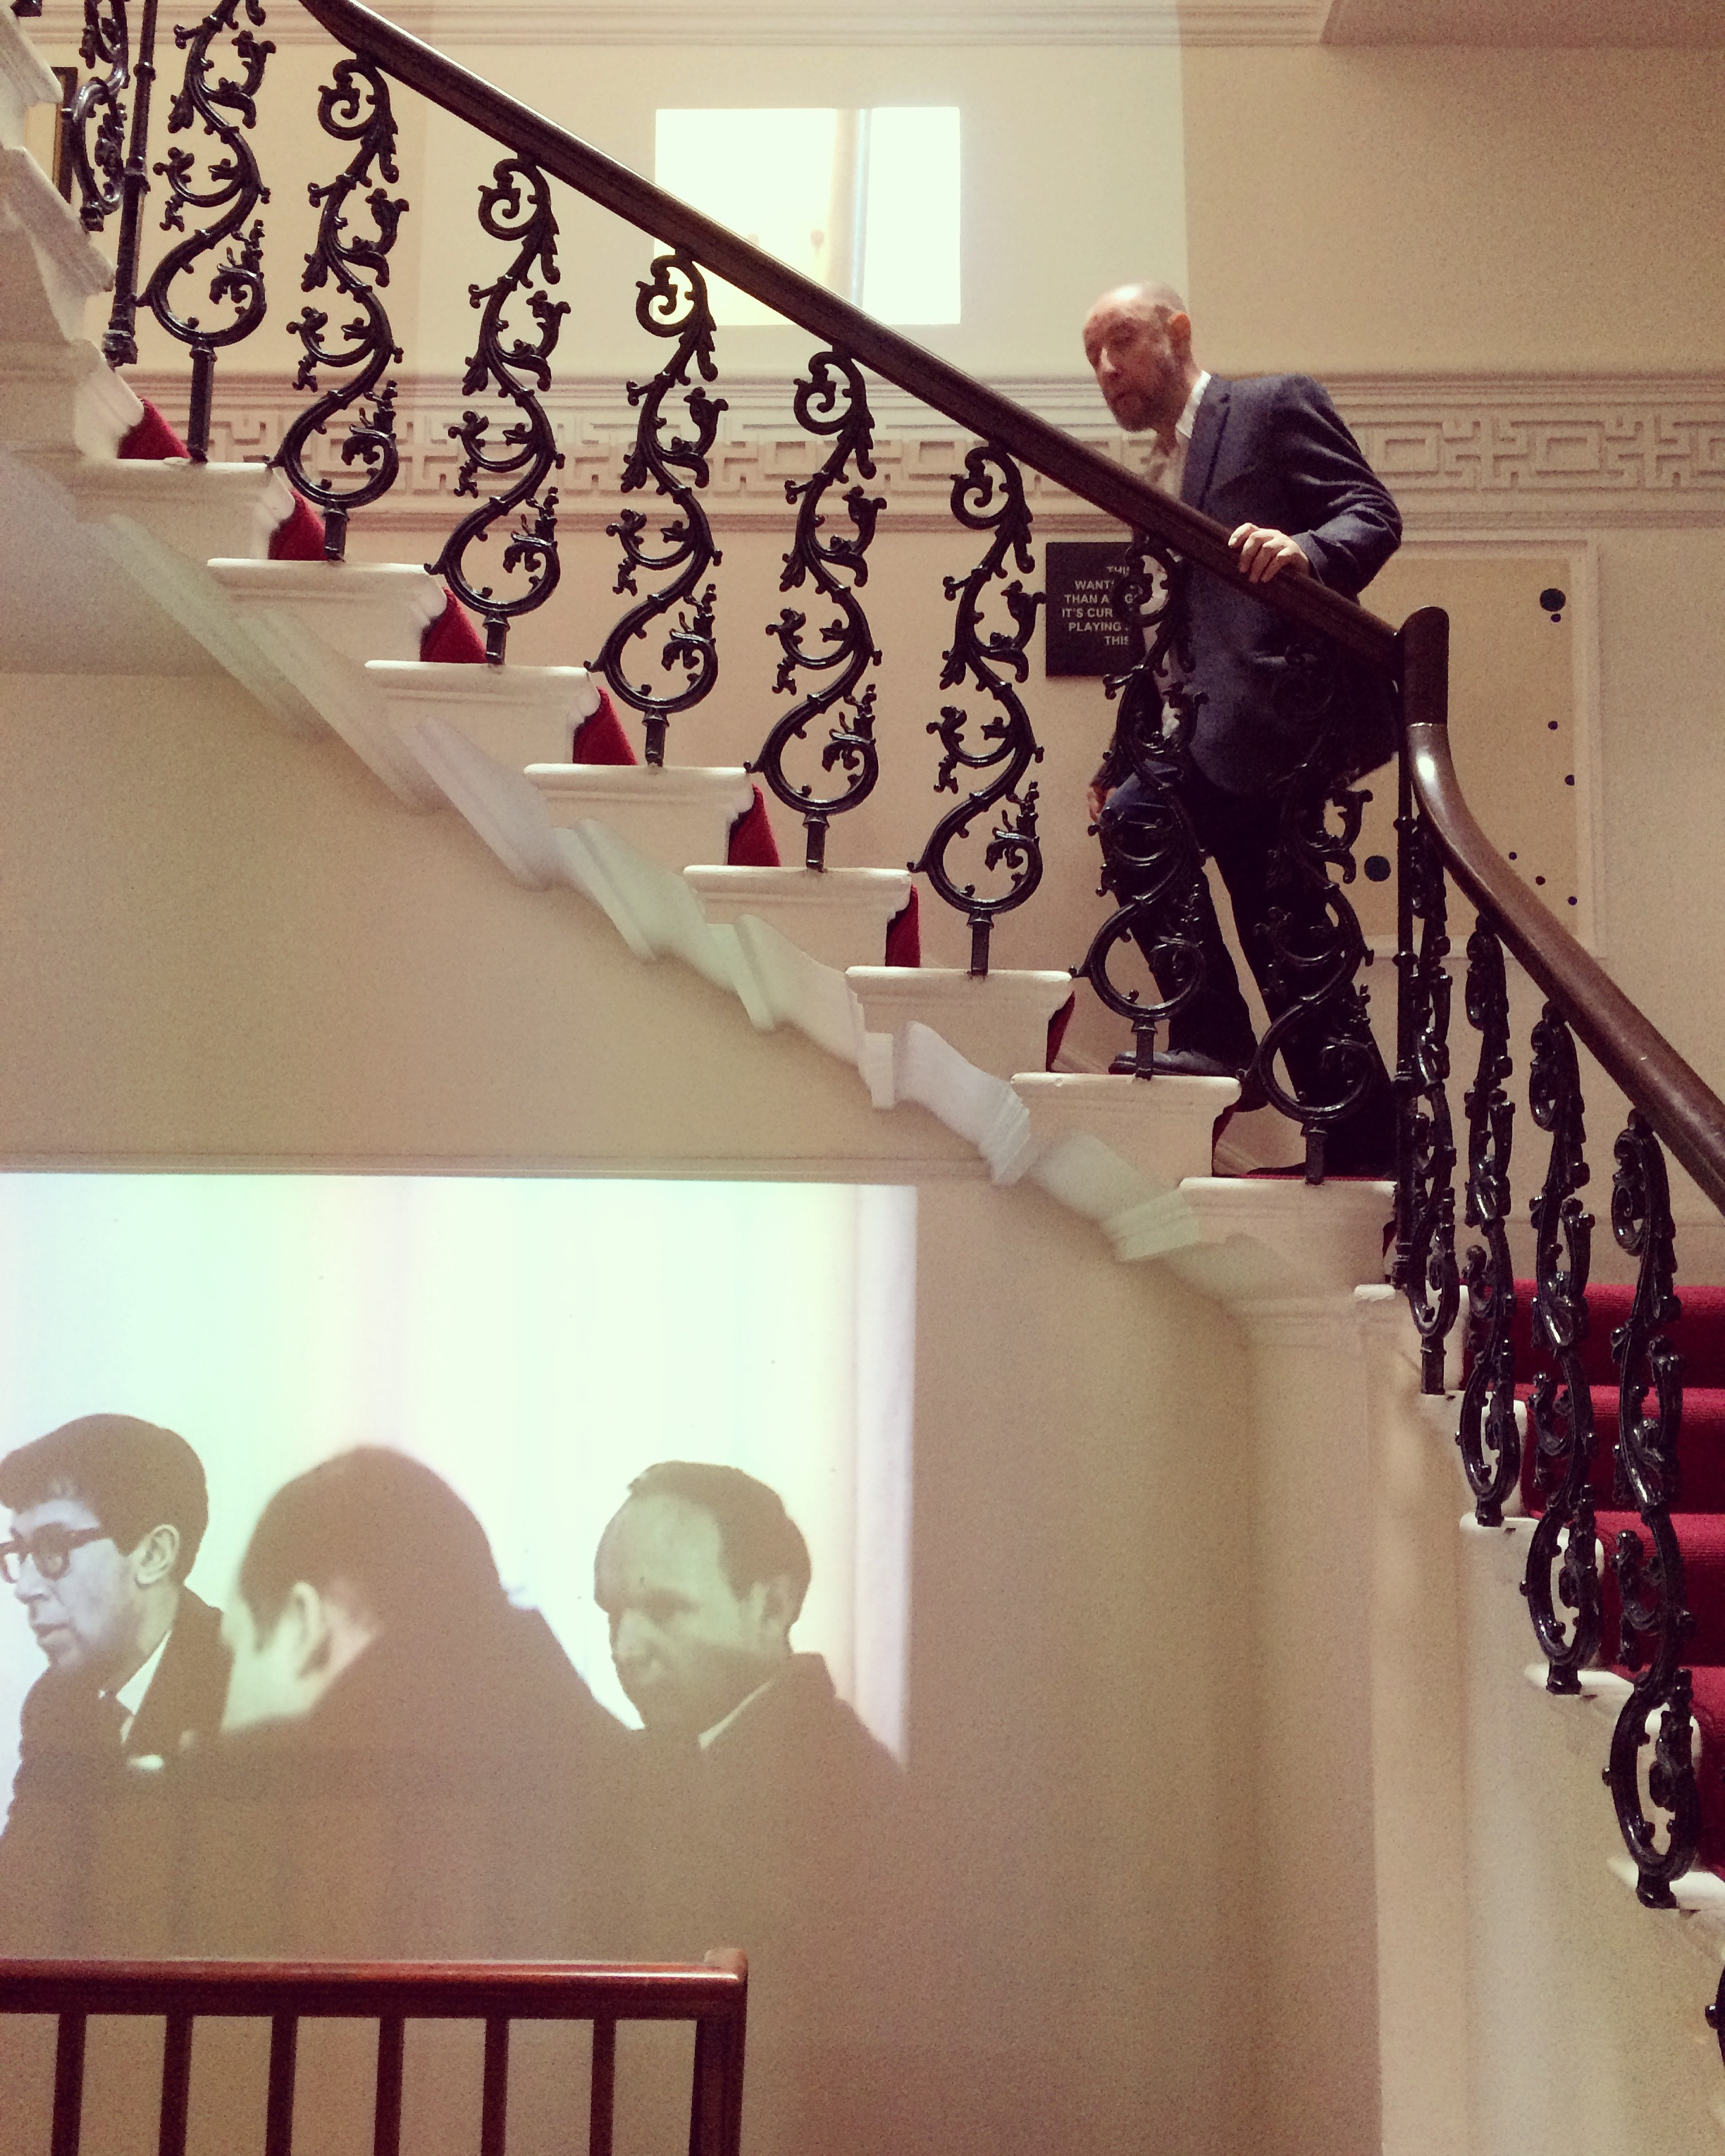 Alexander Brodsky in Pushkin House. Photograph: Clem Cecil